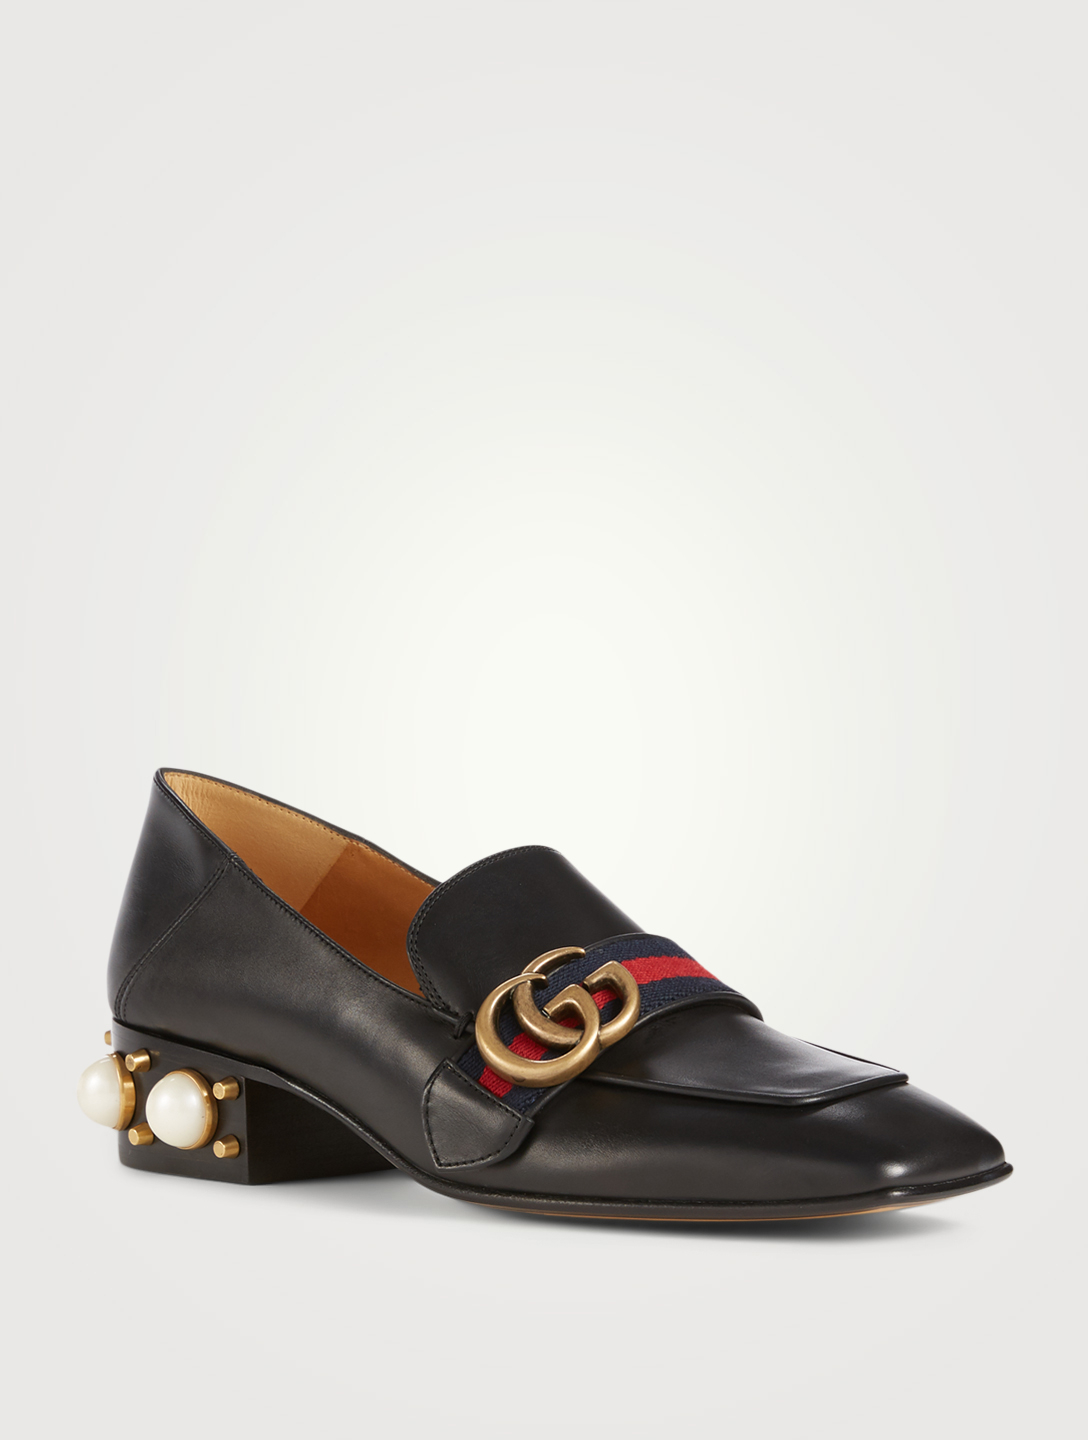 GUCCI Leather Heeled Loafers Designers Black